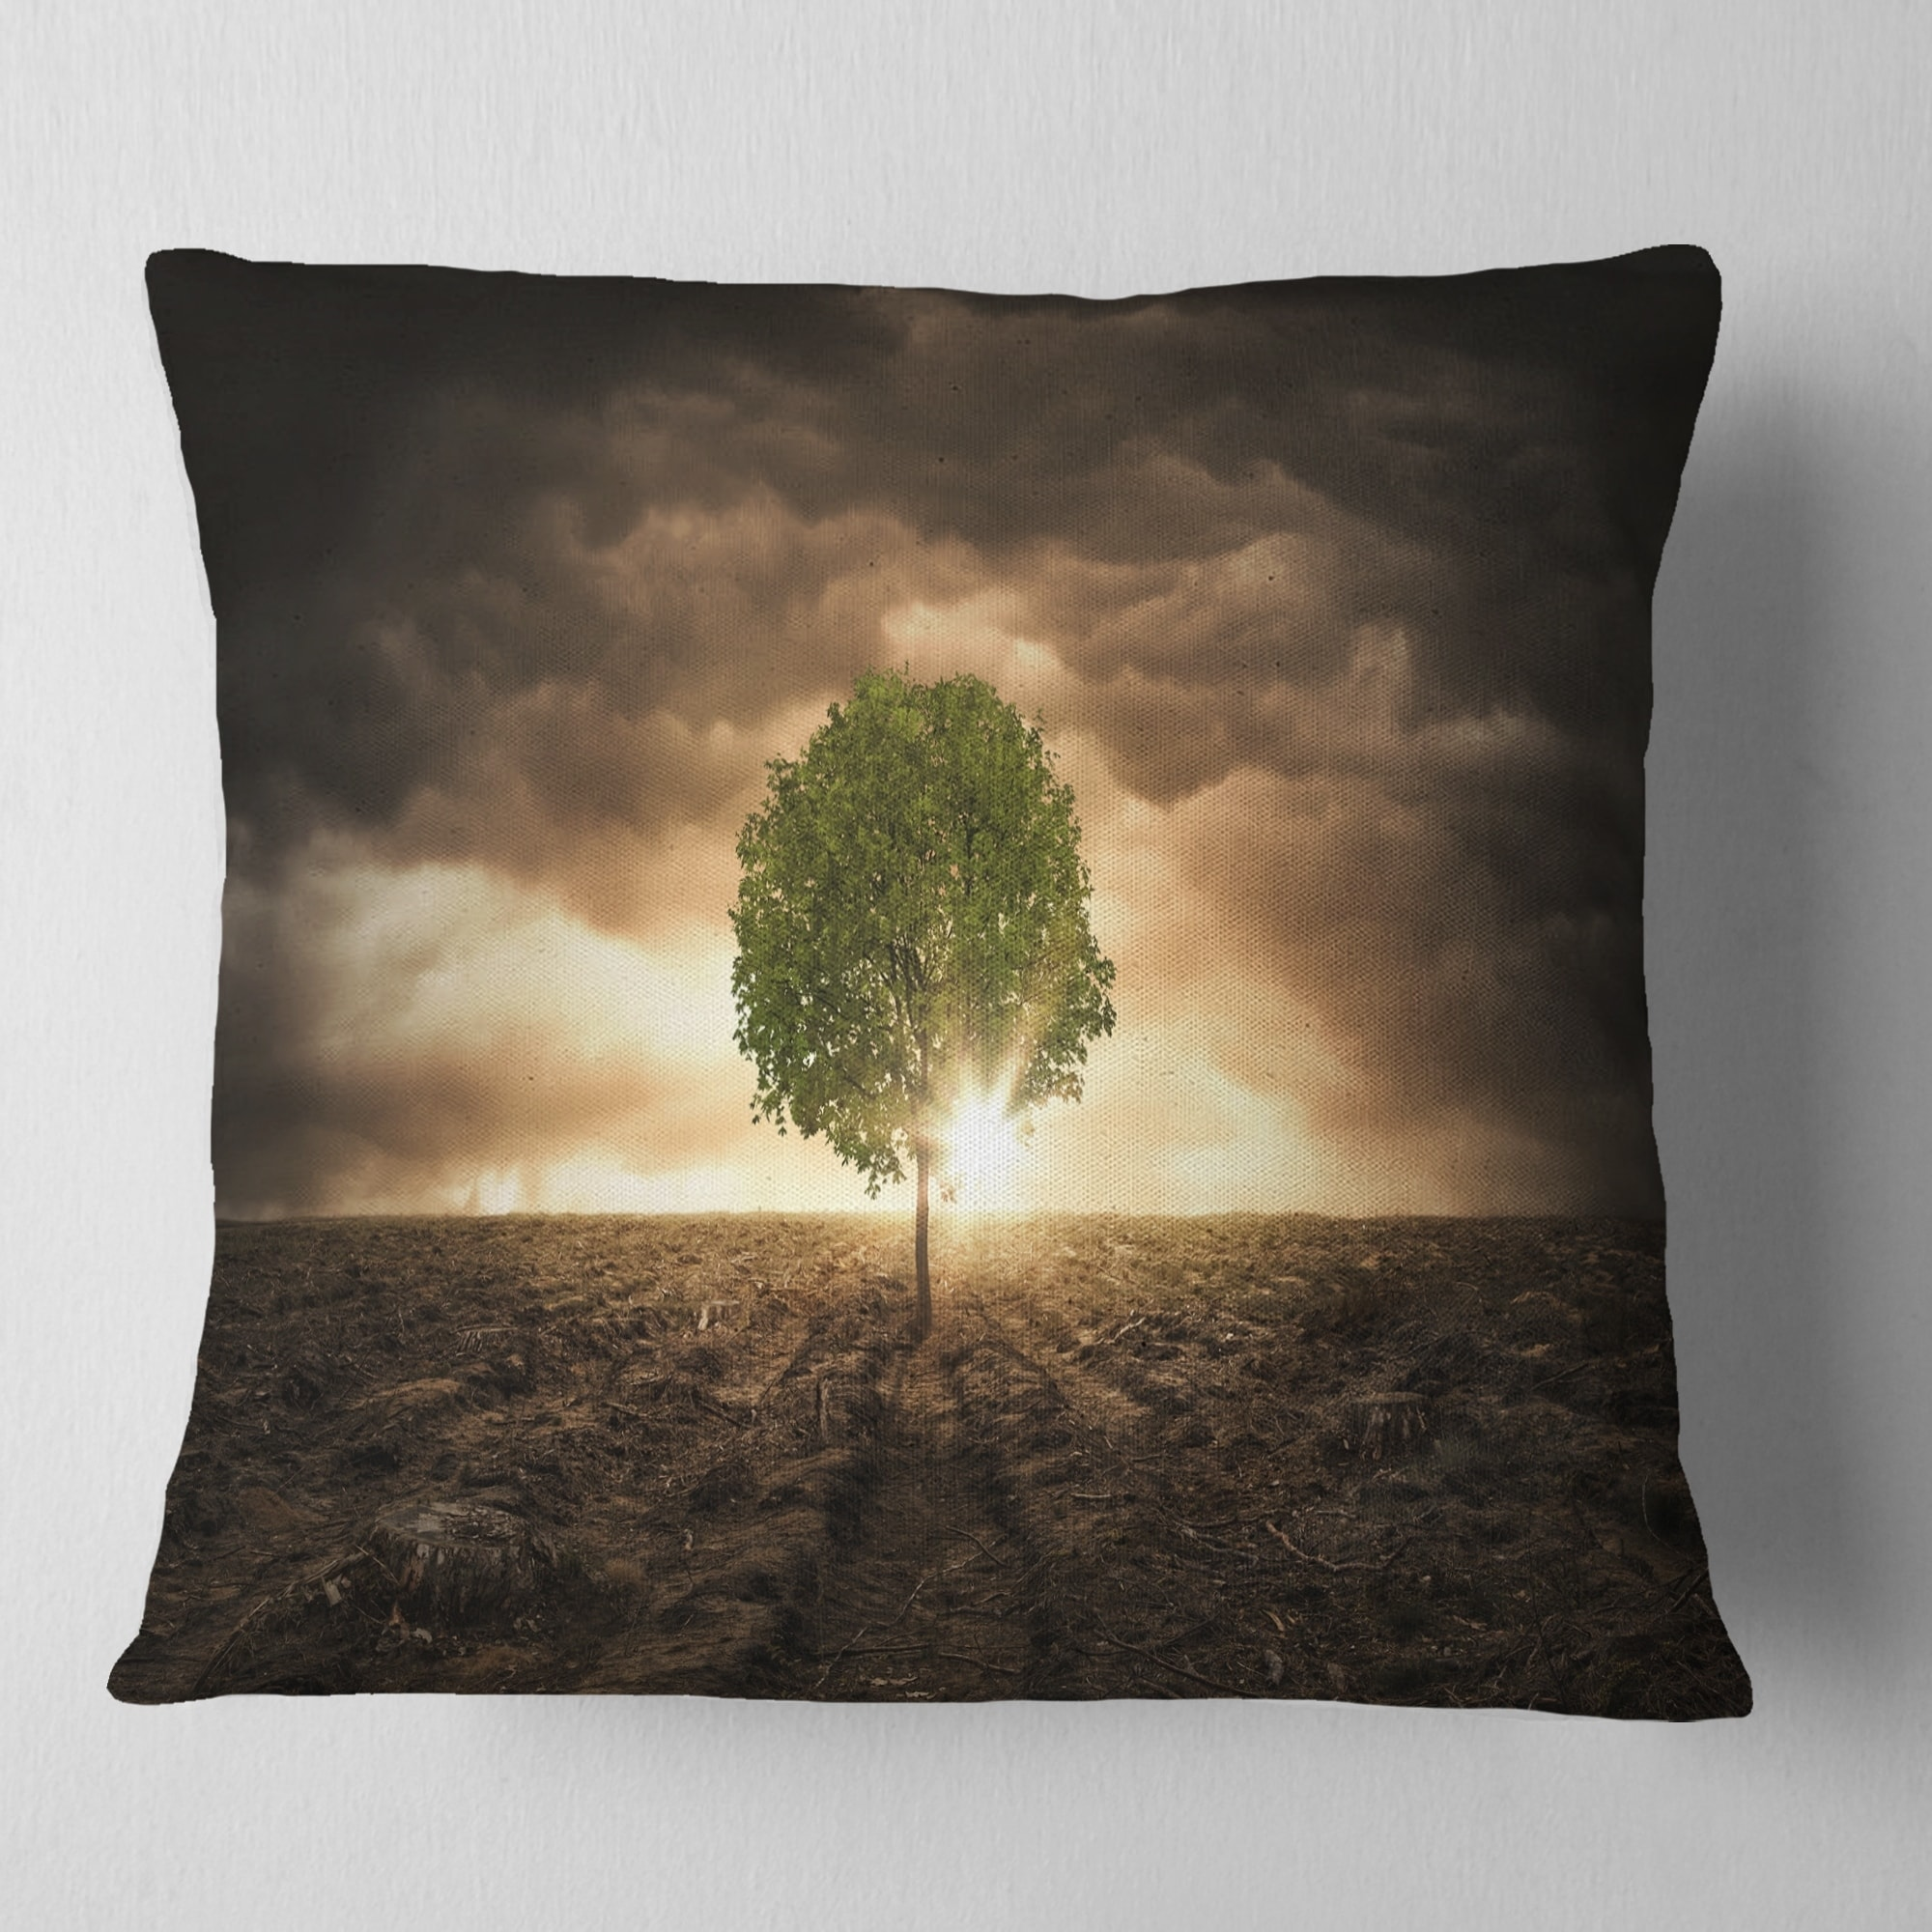 Designart Lonely Tree Under Dramatic Sky Landscape Printed Throw Pillow On Sale Overstock 20890435